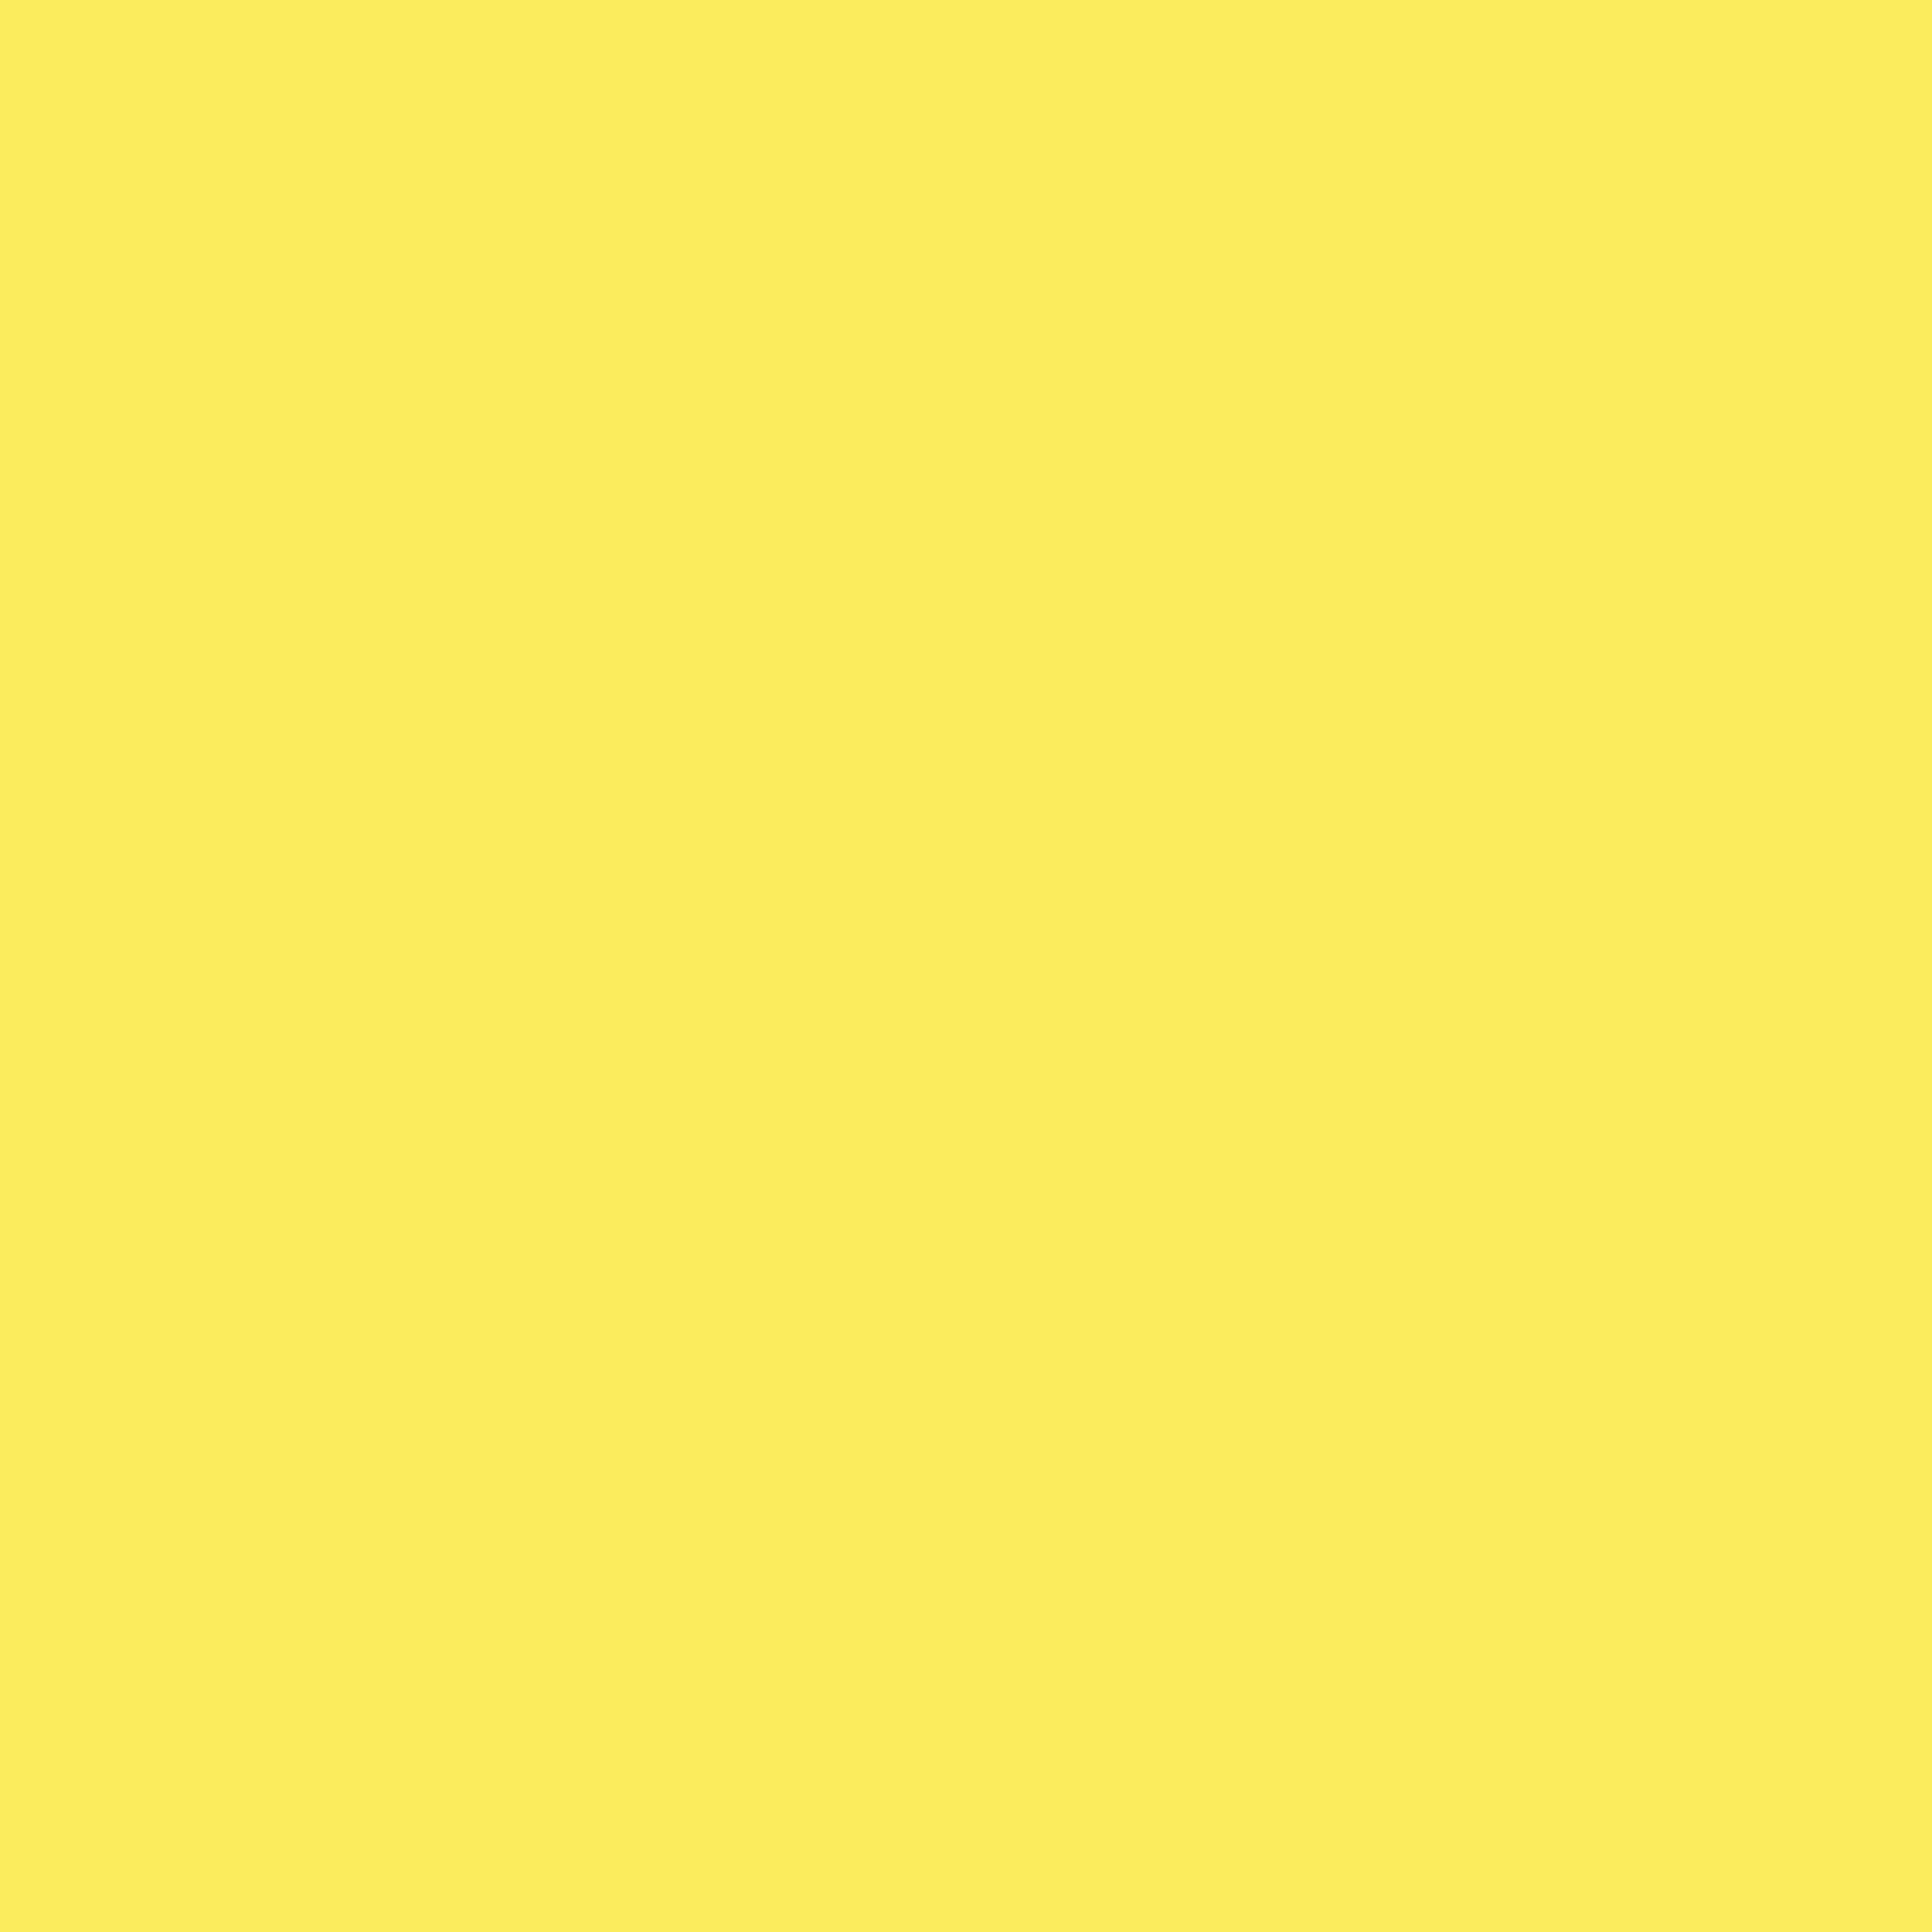 2048x2048 Corn Solid Color Background